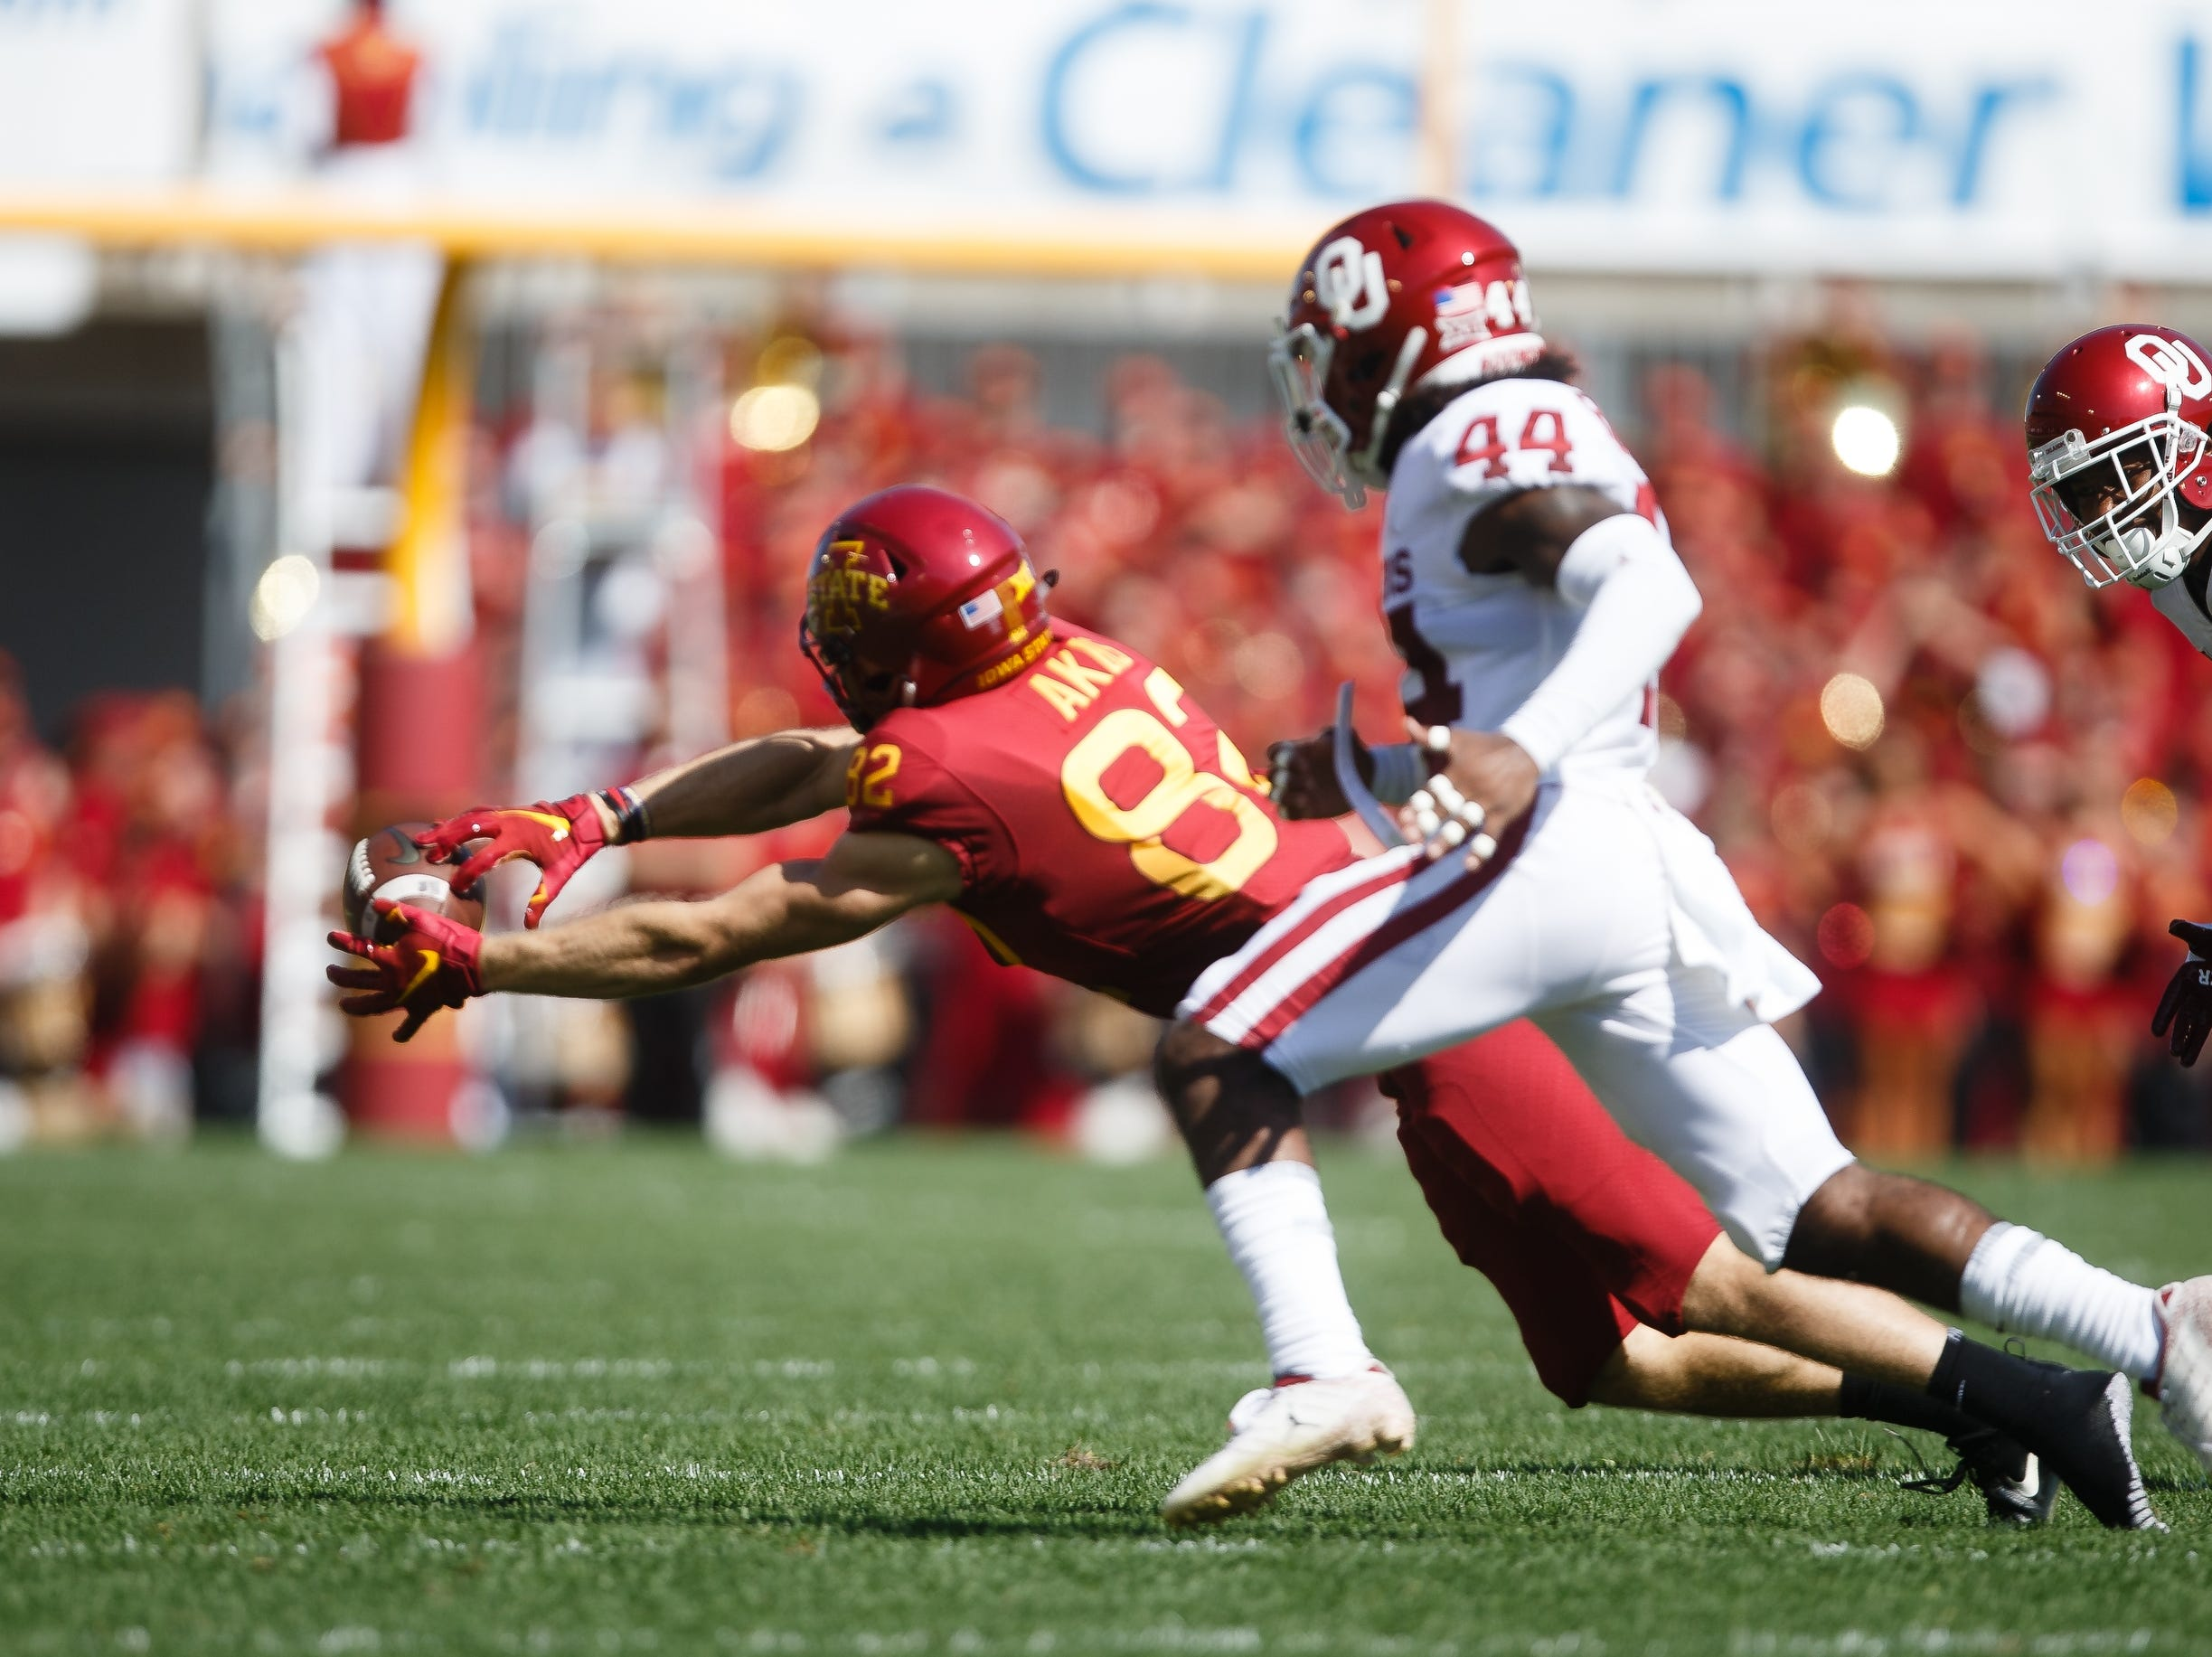 Iowa State's Landen Akers (82) can't come up with a pass during their football game against Oklahoma at Jack Trice Stadium on Saturday, Sept. 15, 2018 in Ames. Oklahoma would go on to win 37-27.